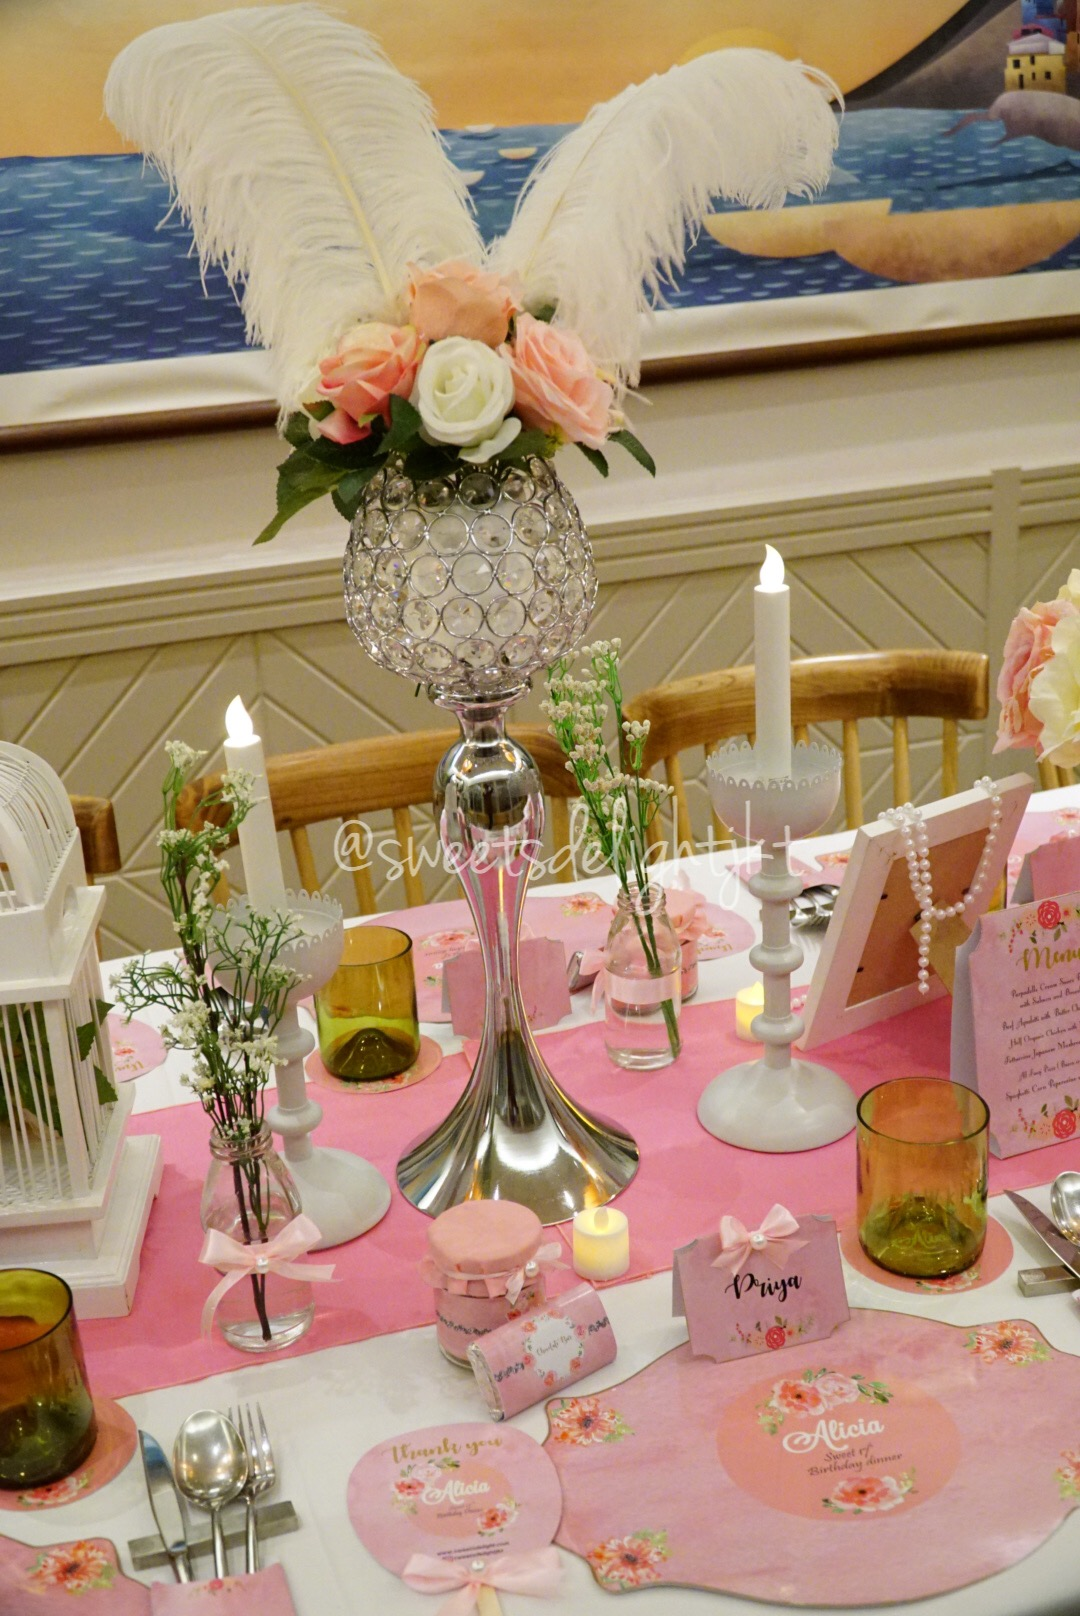 Advertisements & VIP Table Setting Sweet 17th Pink Flowery Themed \u2013 Sweets Delight